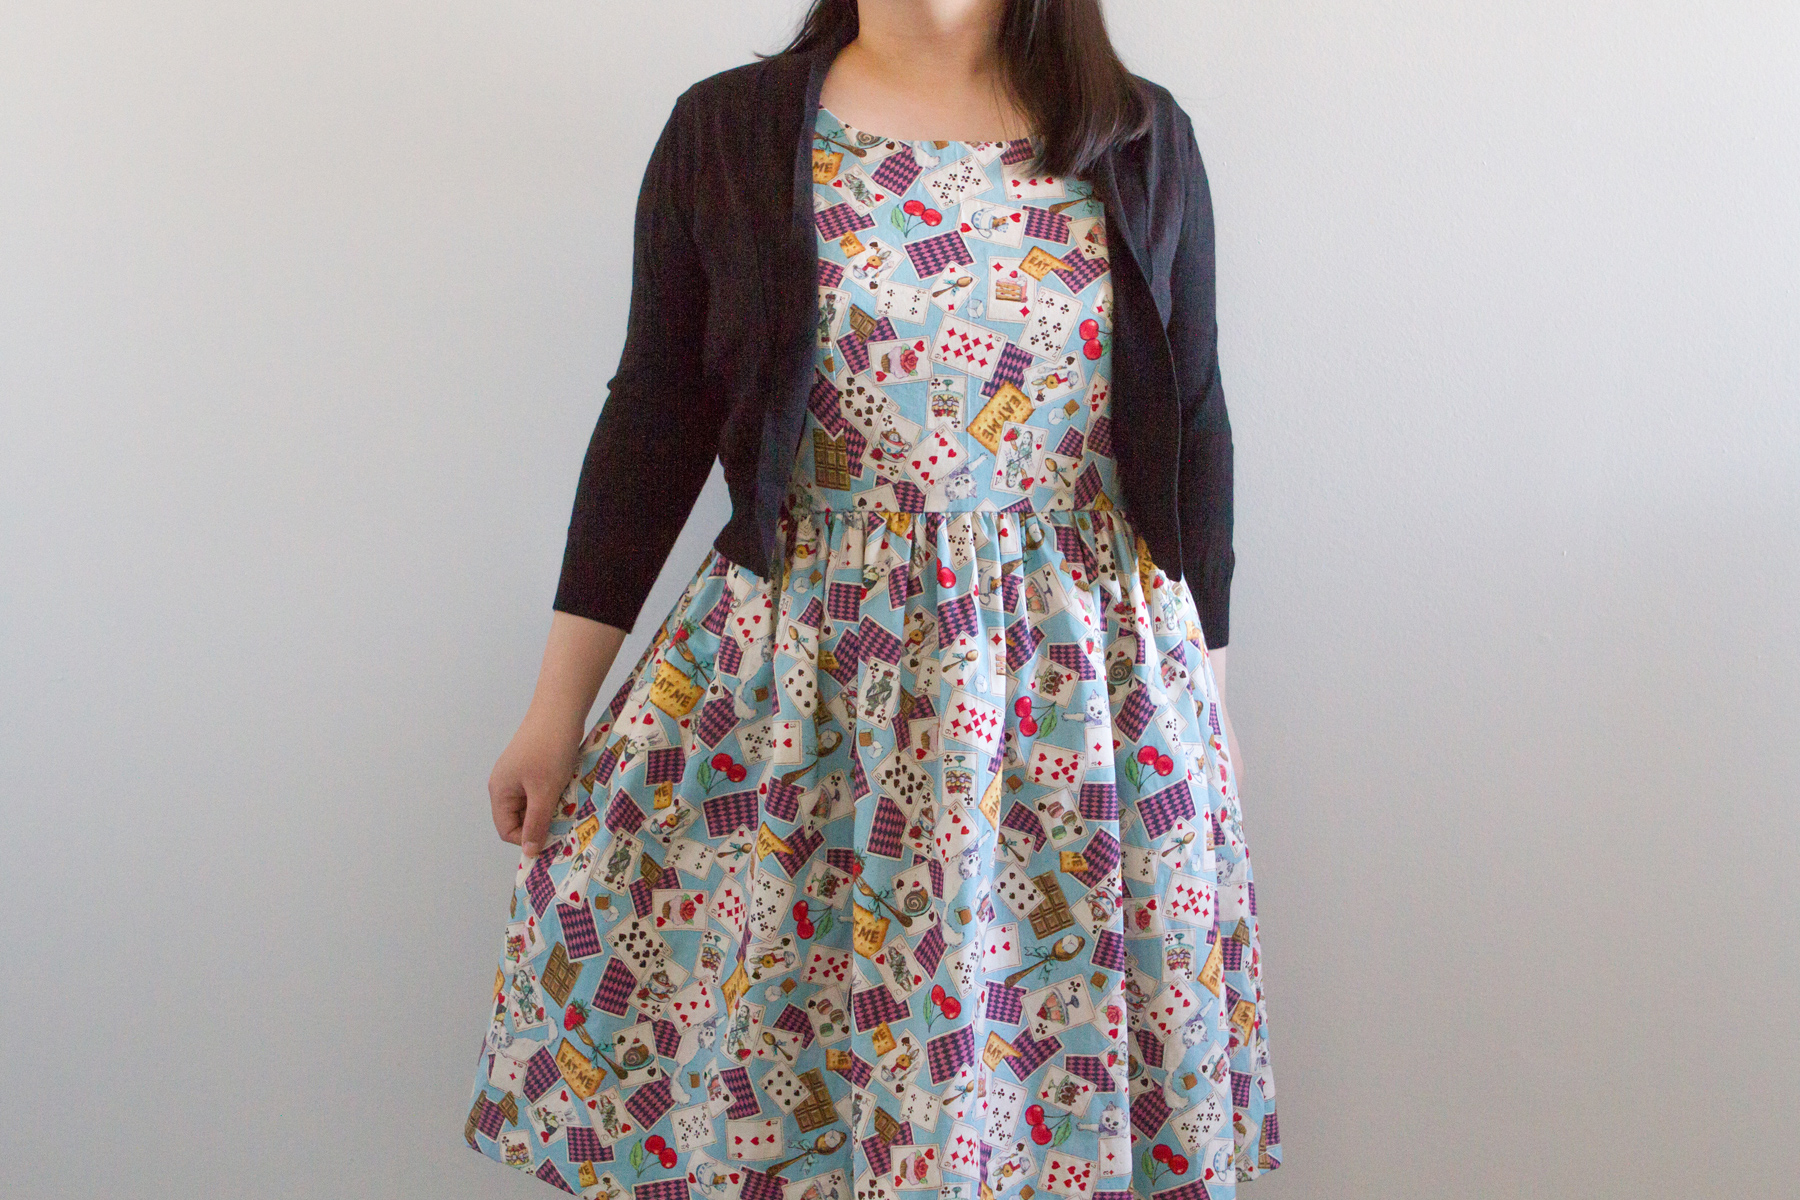 I think a beige cardigan would go better with this dress, I need to get one!